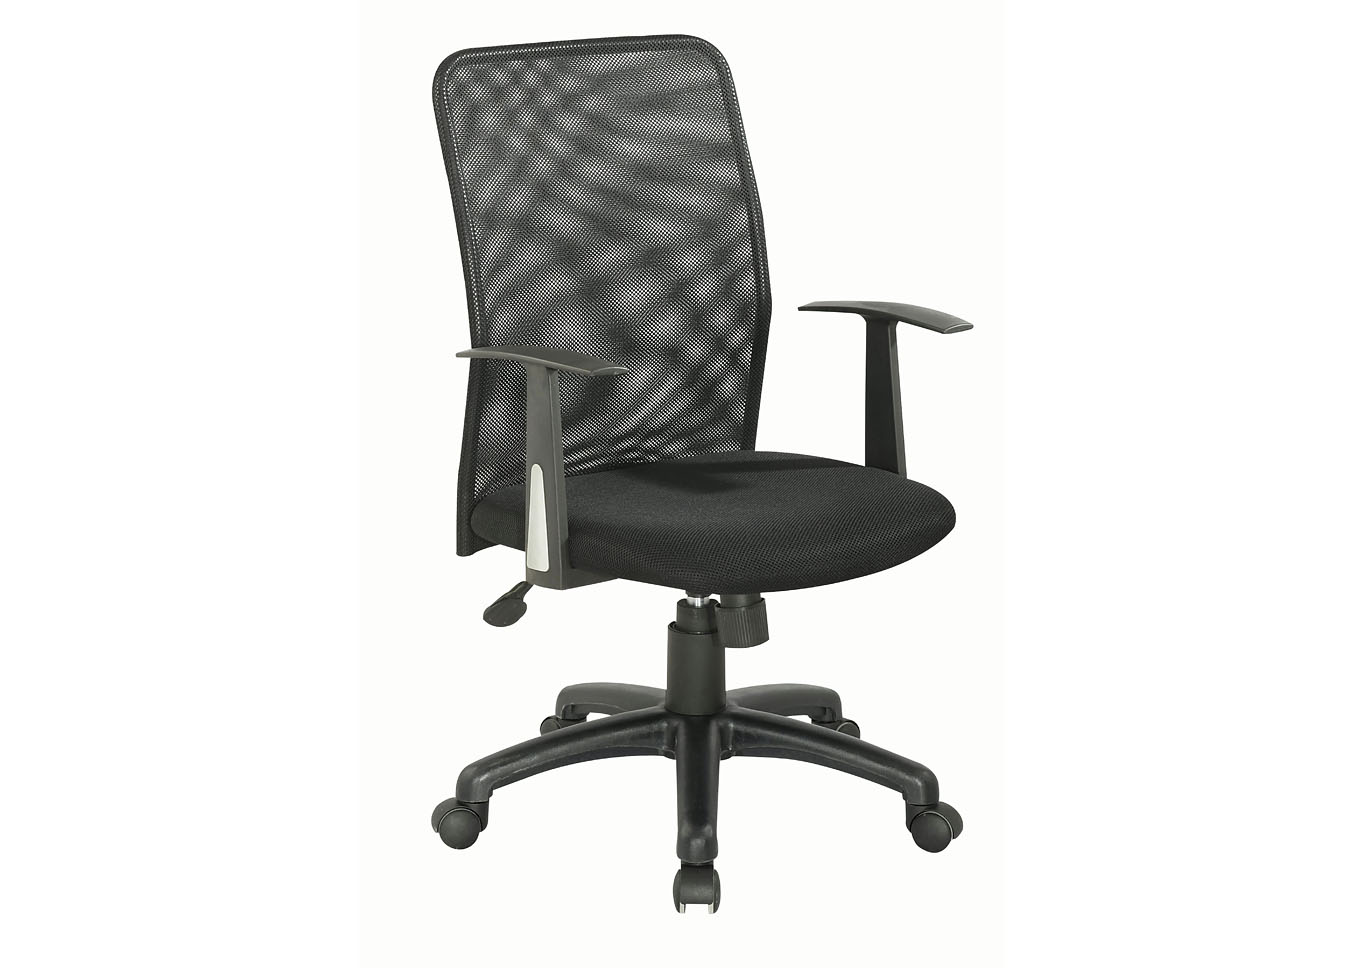 Black Ergonomic Computer Chair W/ Mesh Back,Chintaly Imports